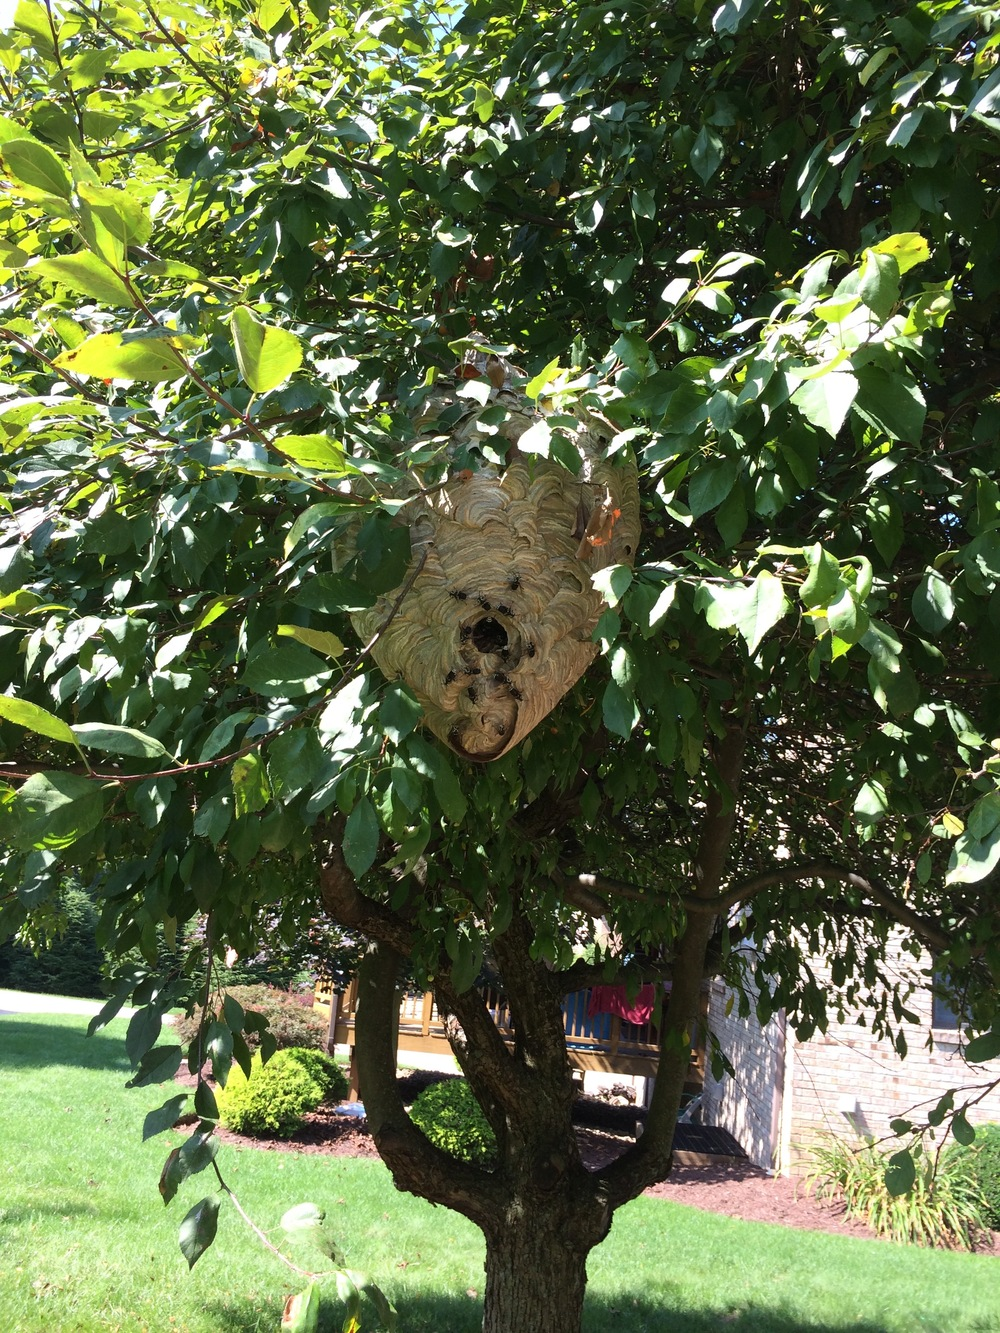 This is NOT a honey bee swarm - this is a hornets nest. Honey bees do NOT build a nest in the open.